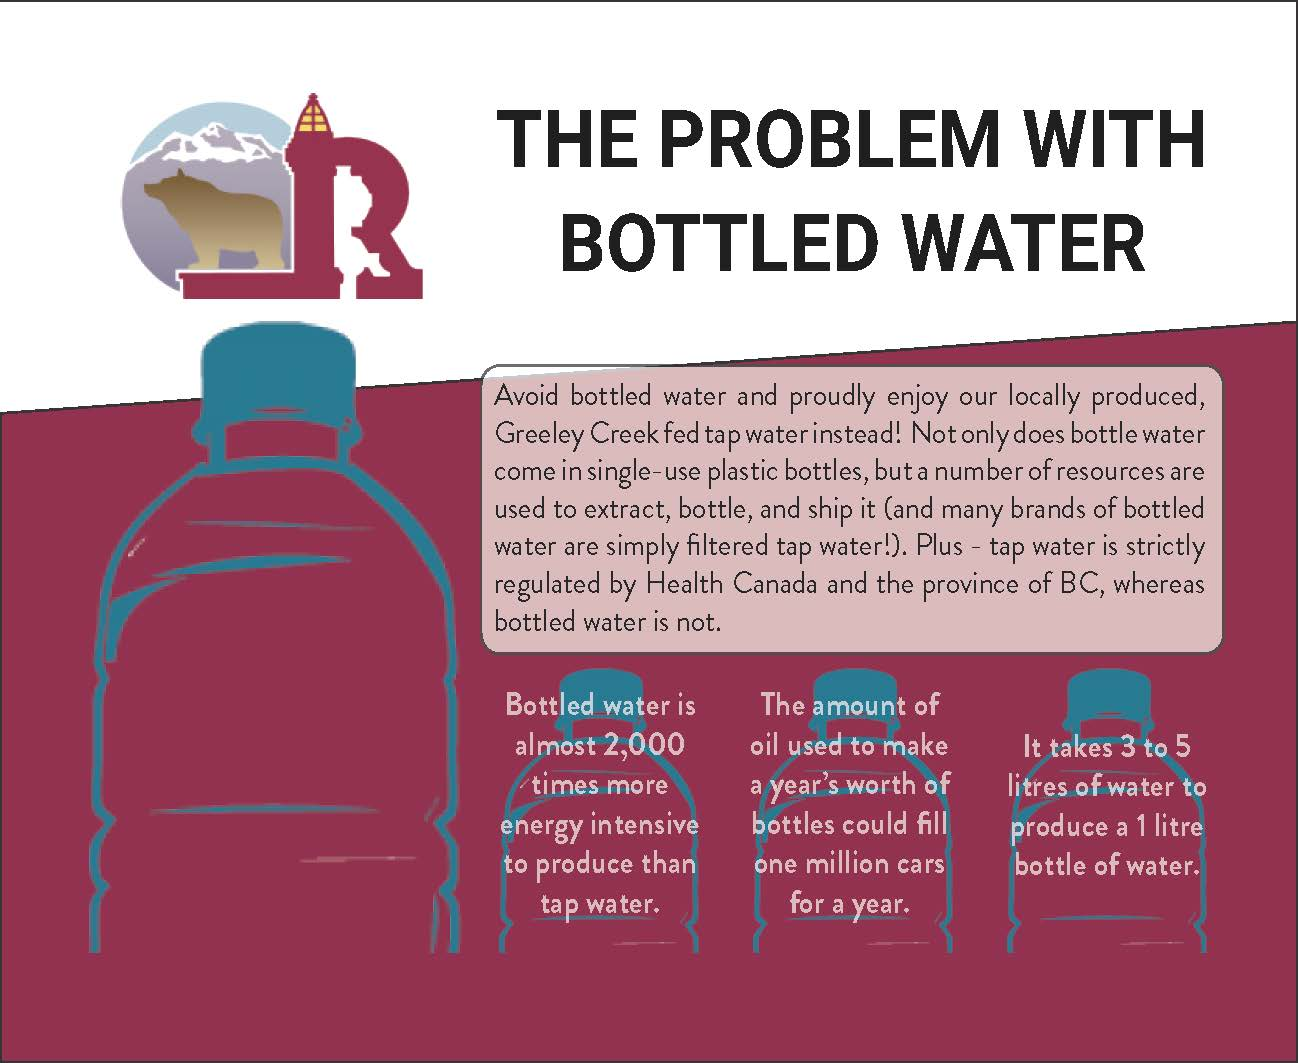 The Problem with Bottled Water